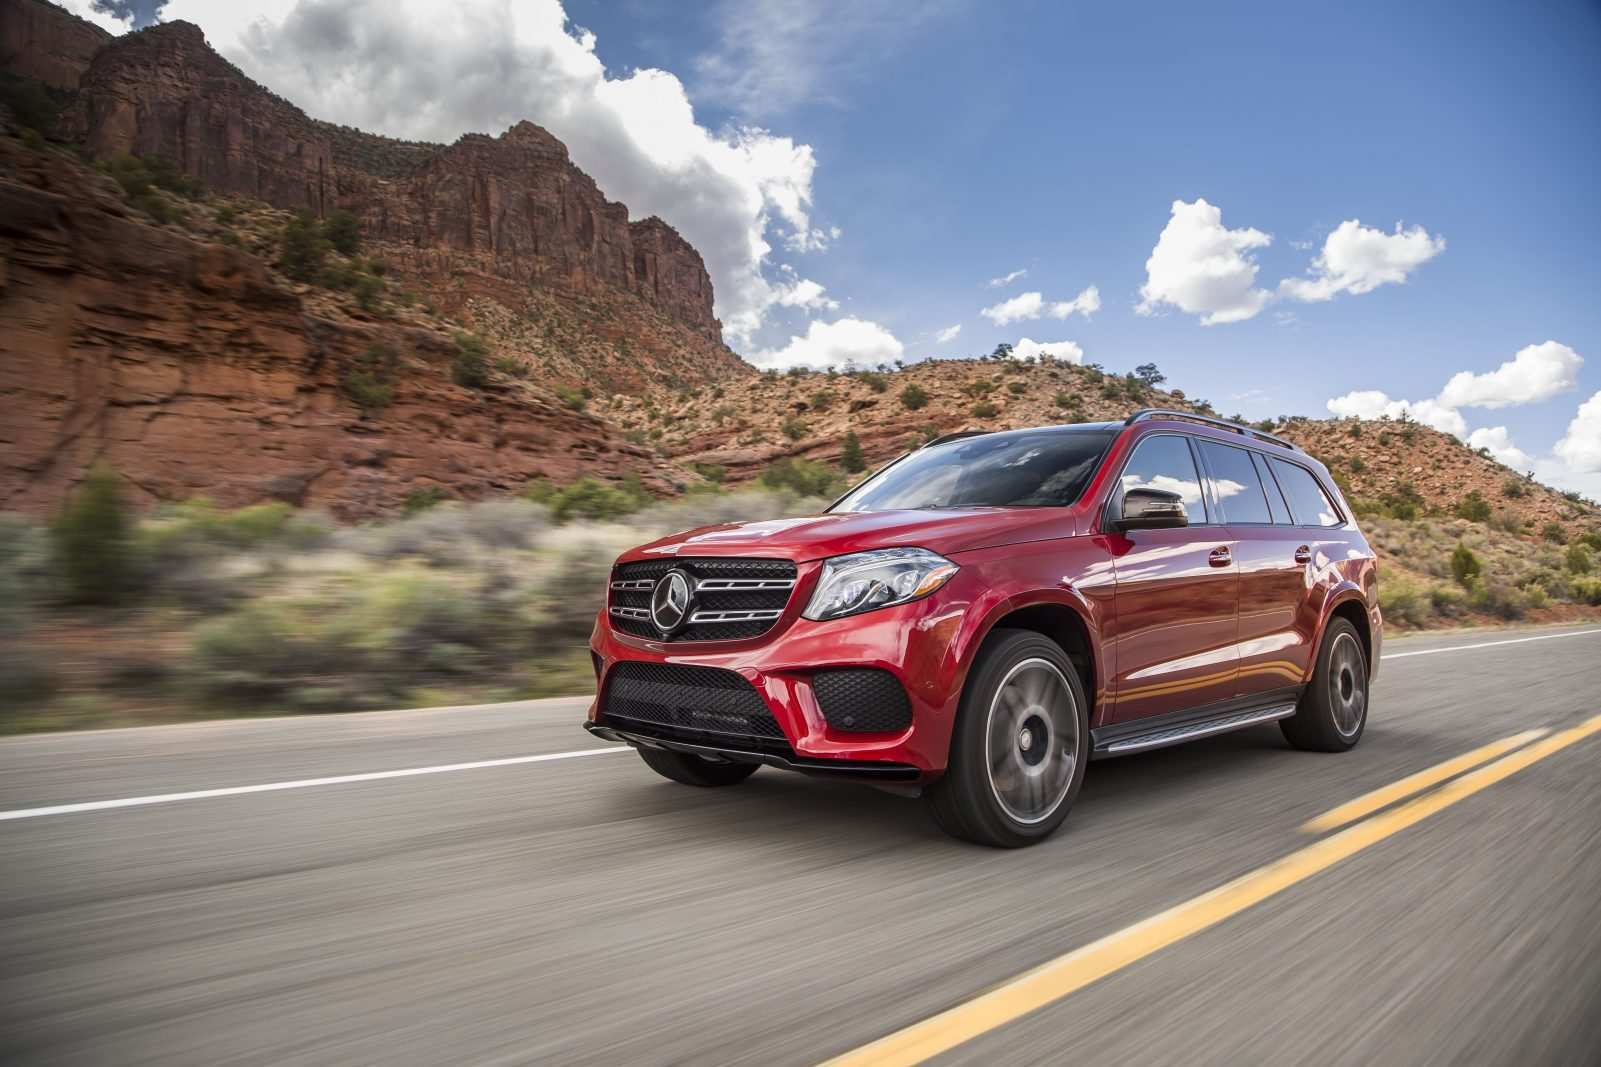 43 All New 2020 Mercedes Gl Class Release Date And Concept